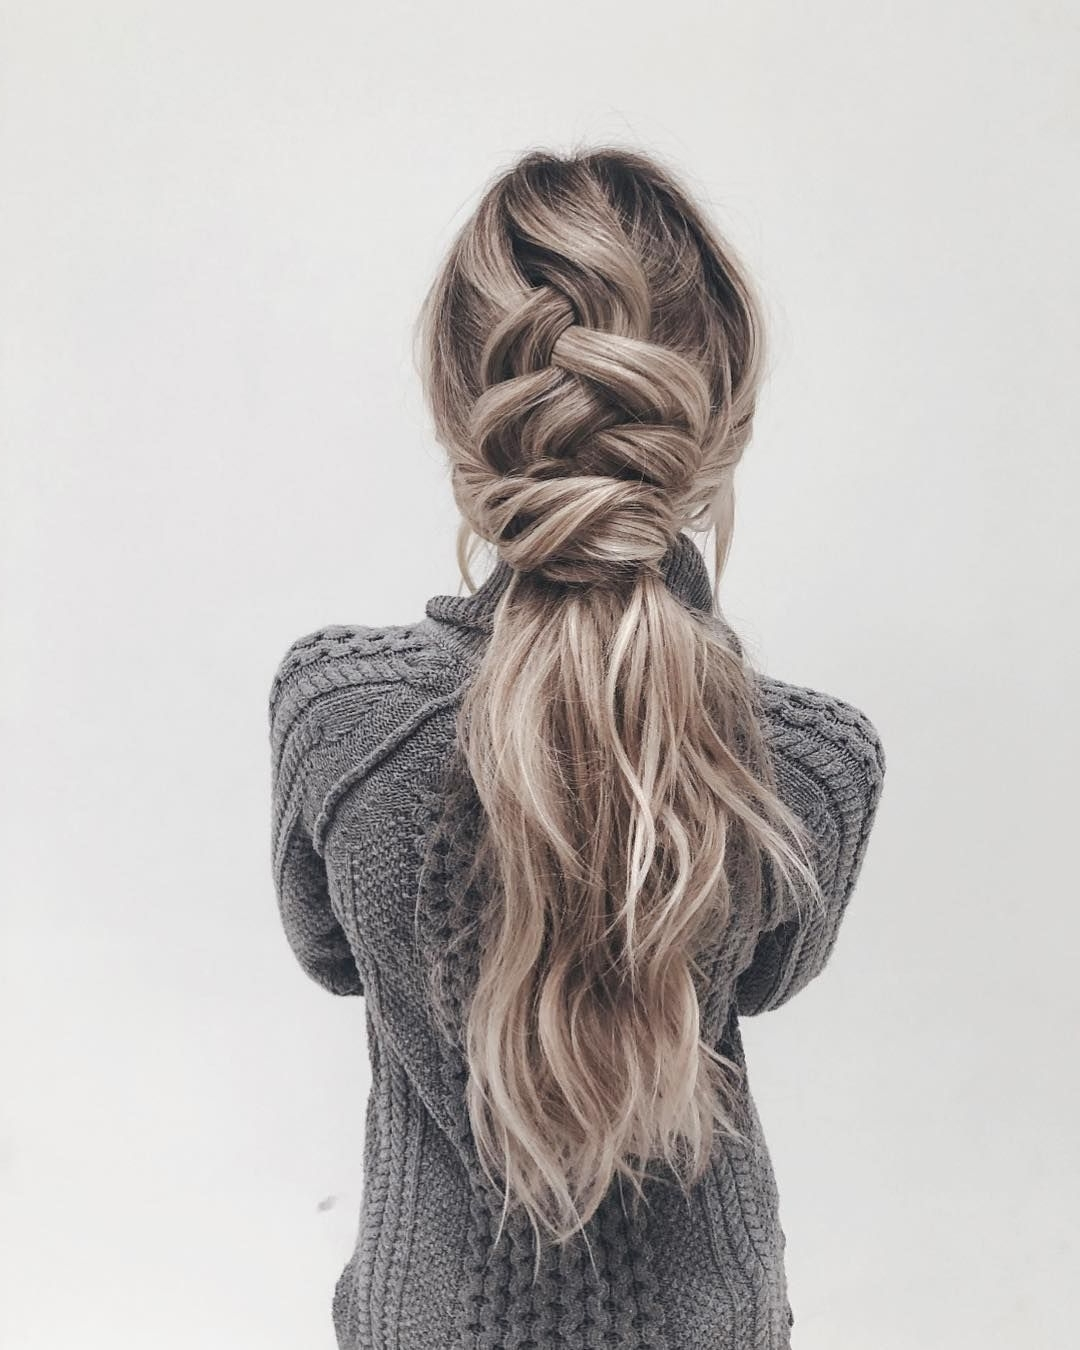 Famous Boho Braided Hairstyles Within 49 Boho Braid Hairstyles To Try (View 9 of 15)